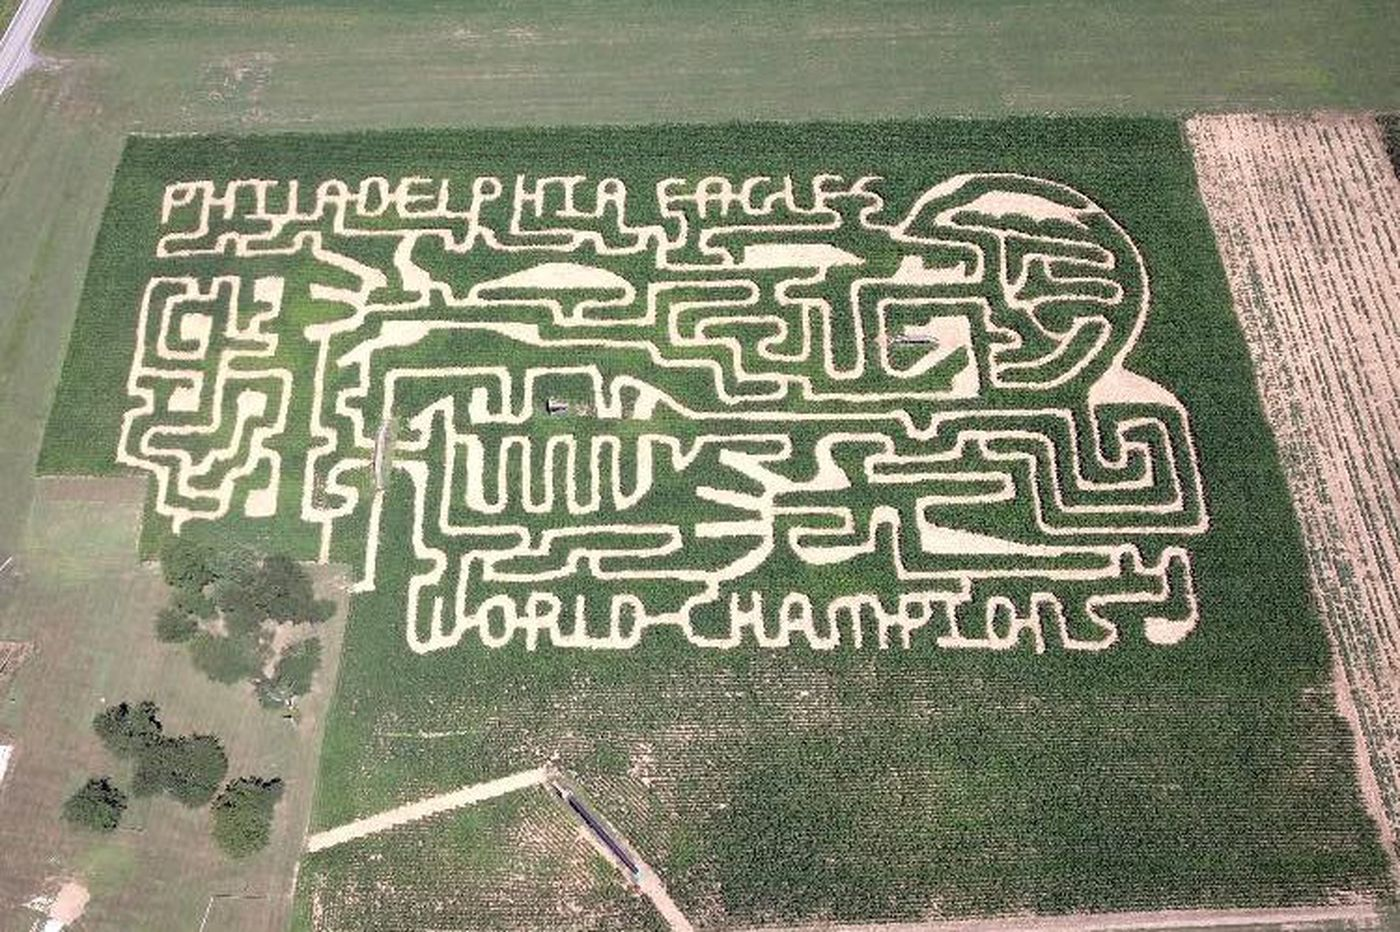 World Champion Eagles theme was a no-brainer for Chester County corn maze